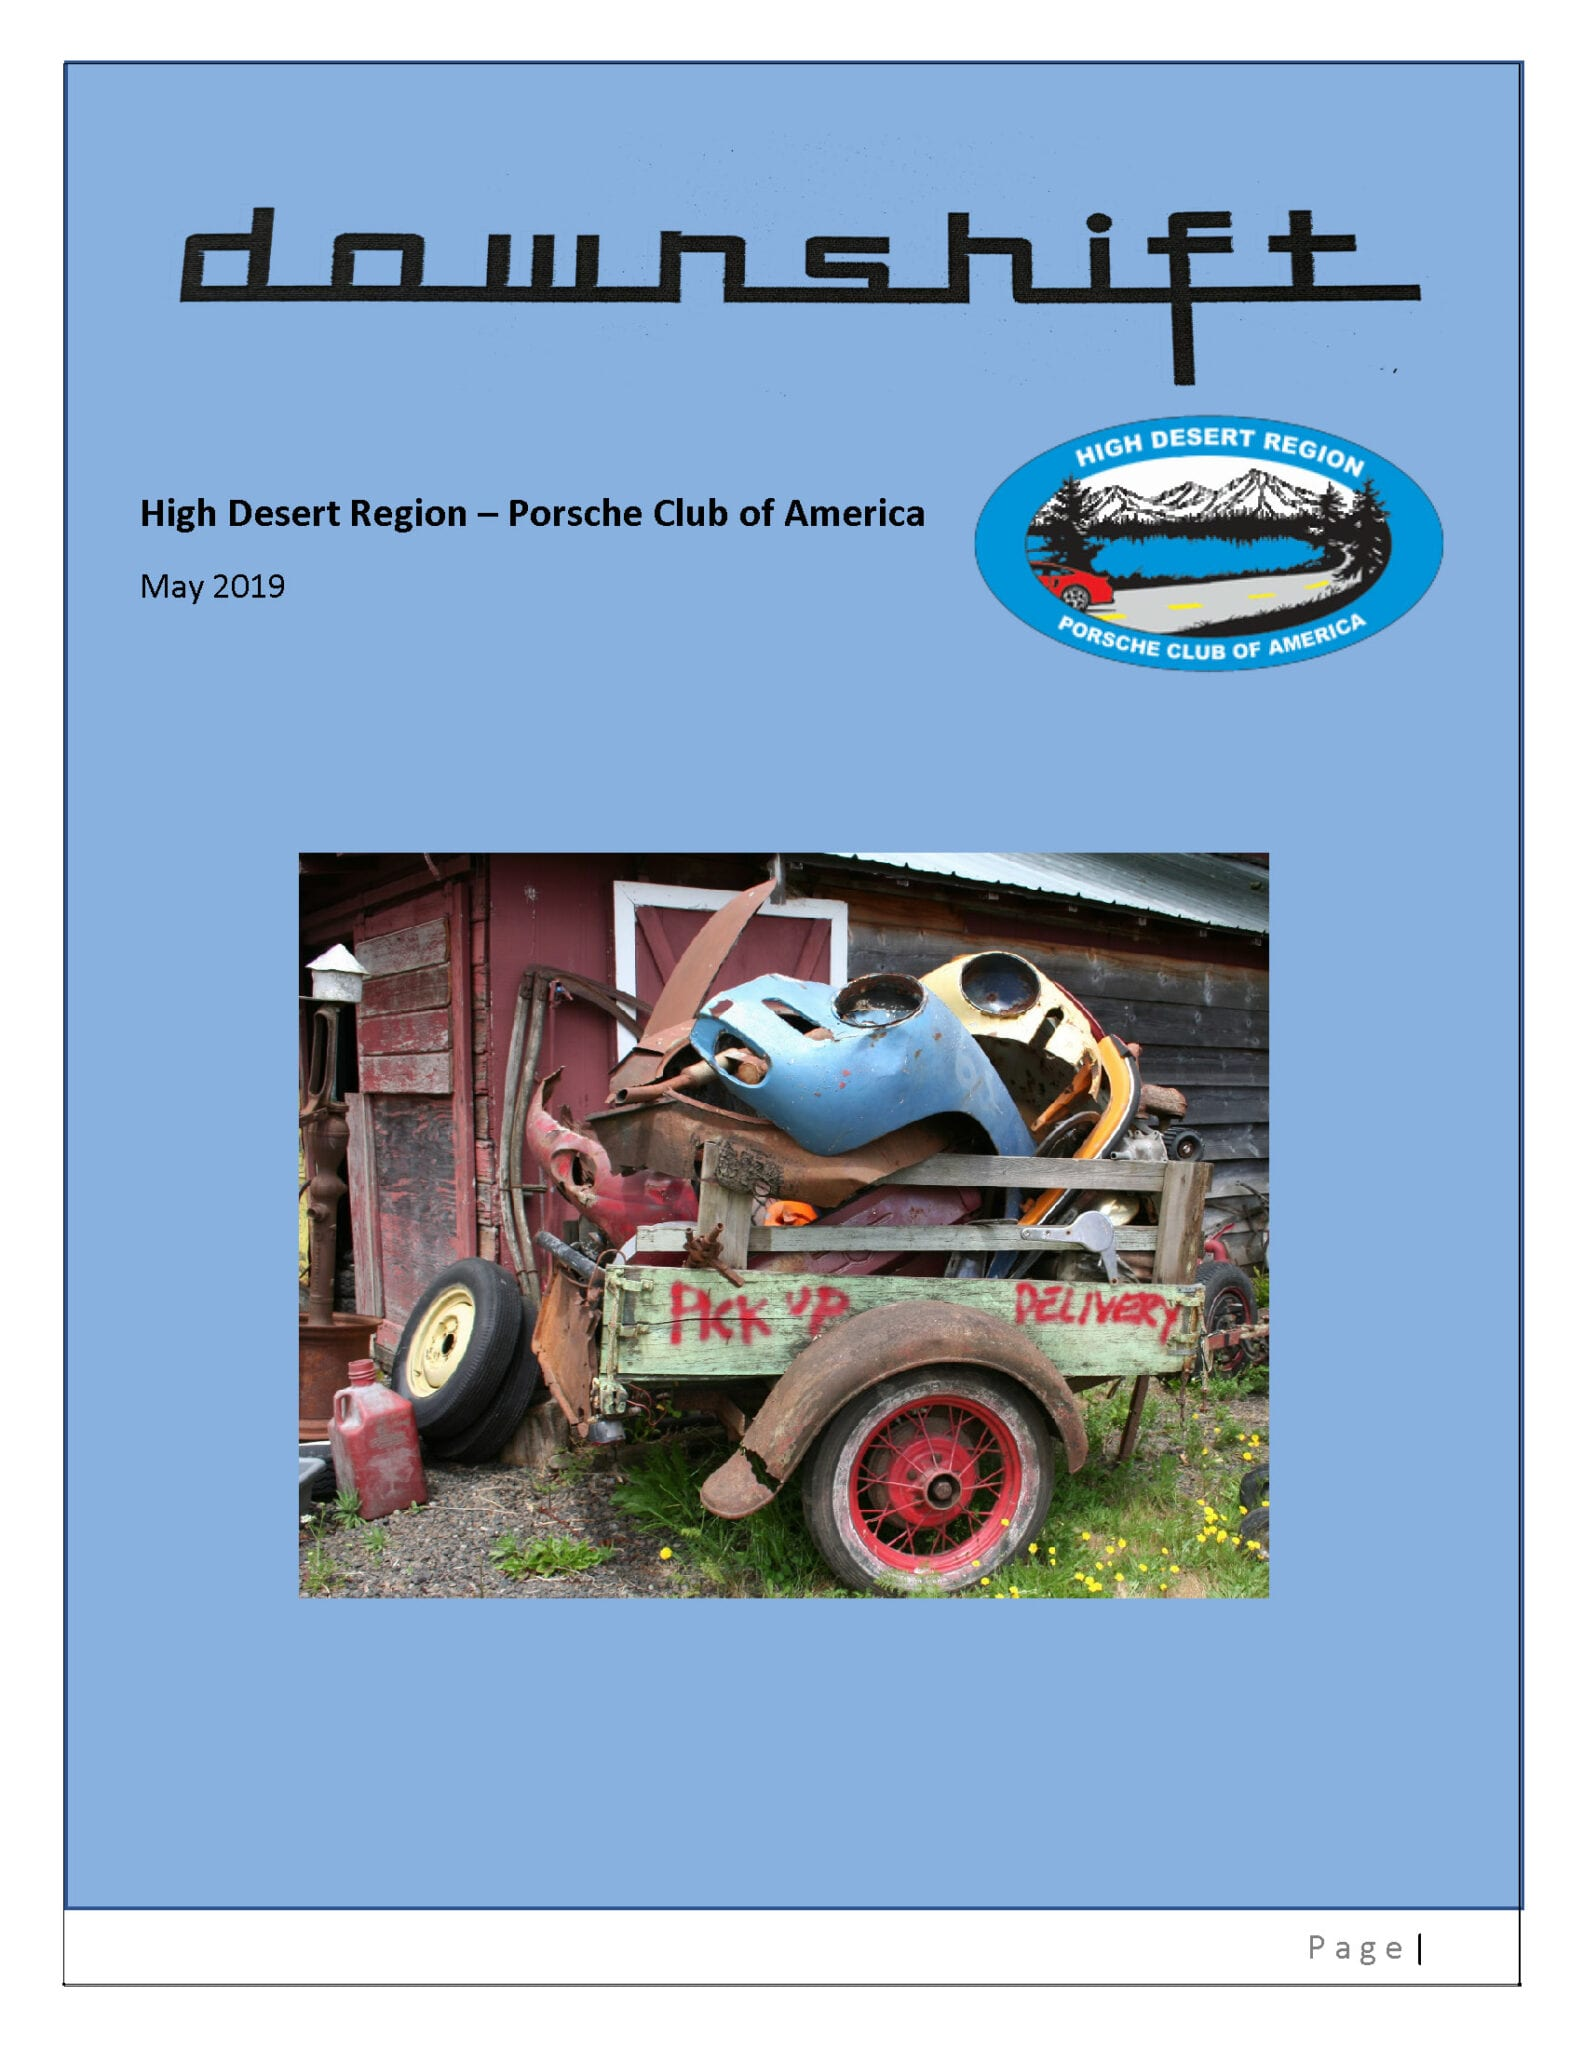 Downshift, the Newsletter of the High Desert Region Porsche Club